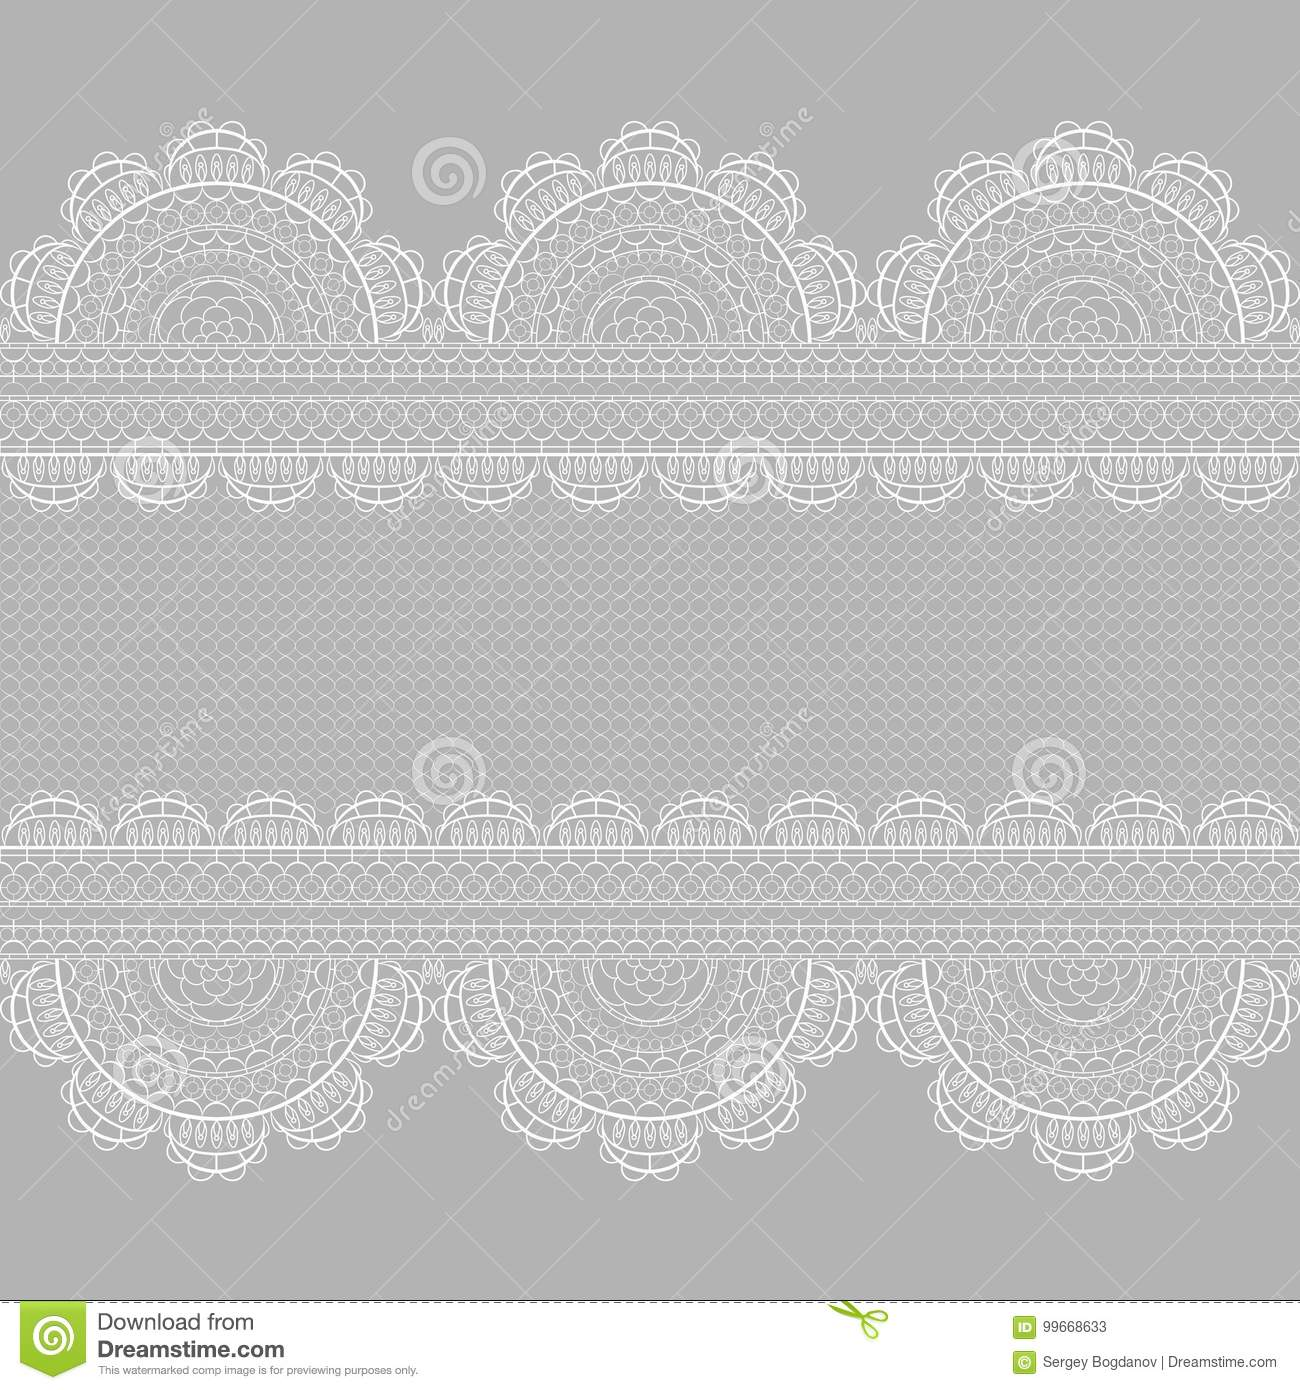 White lace pattern stock vector. Illustration of seamless - 99668633